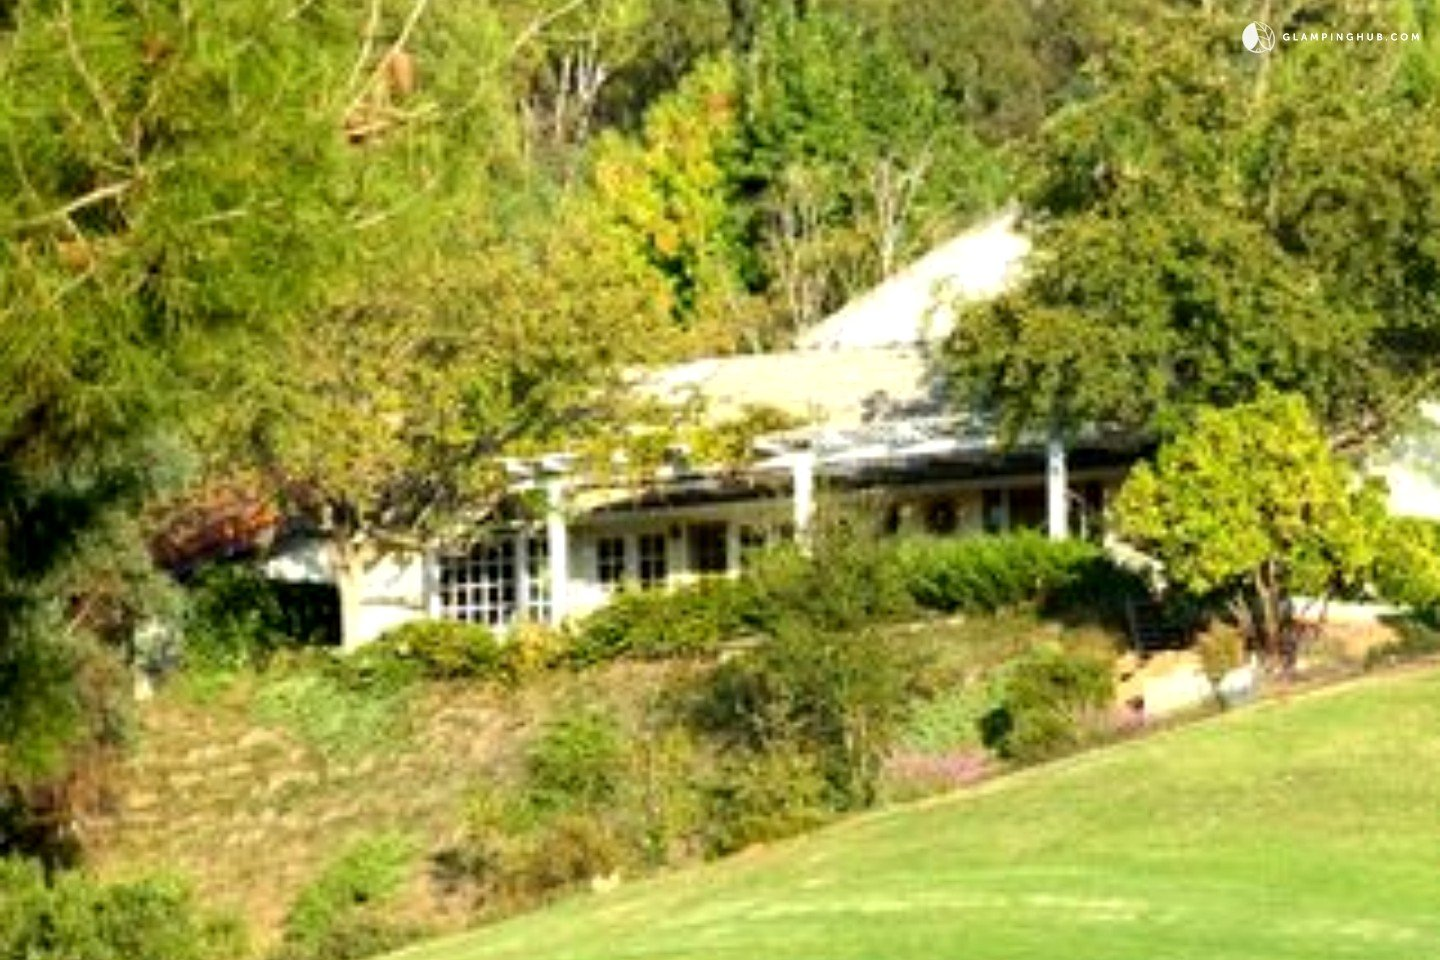 Vacation cottage in fallbrook california for Vacation cottage